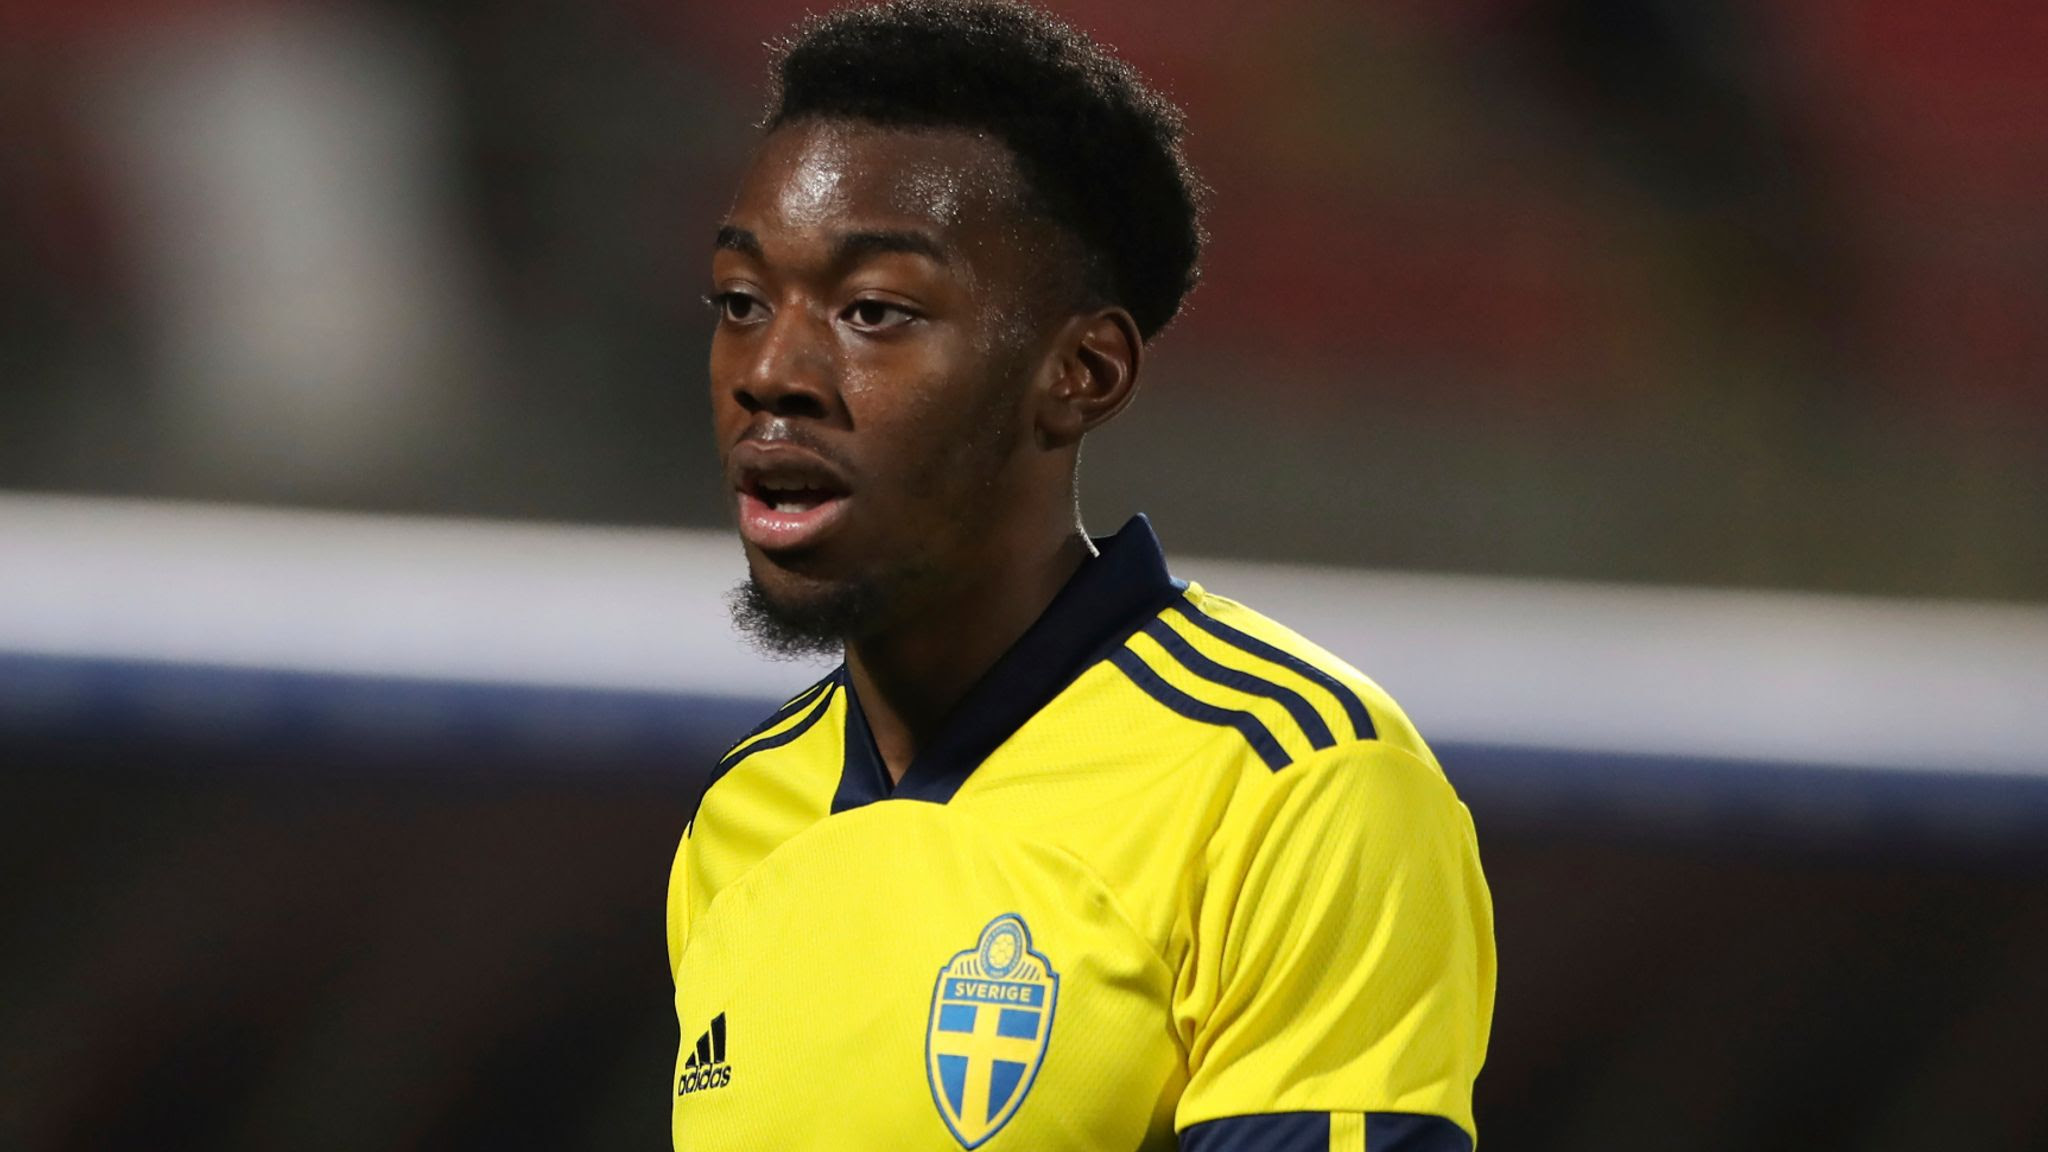 Anthony Elanga: UEFA investigating Man Utd forward's claim he was racially abused while playing for Sweden U21s in Italy